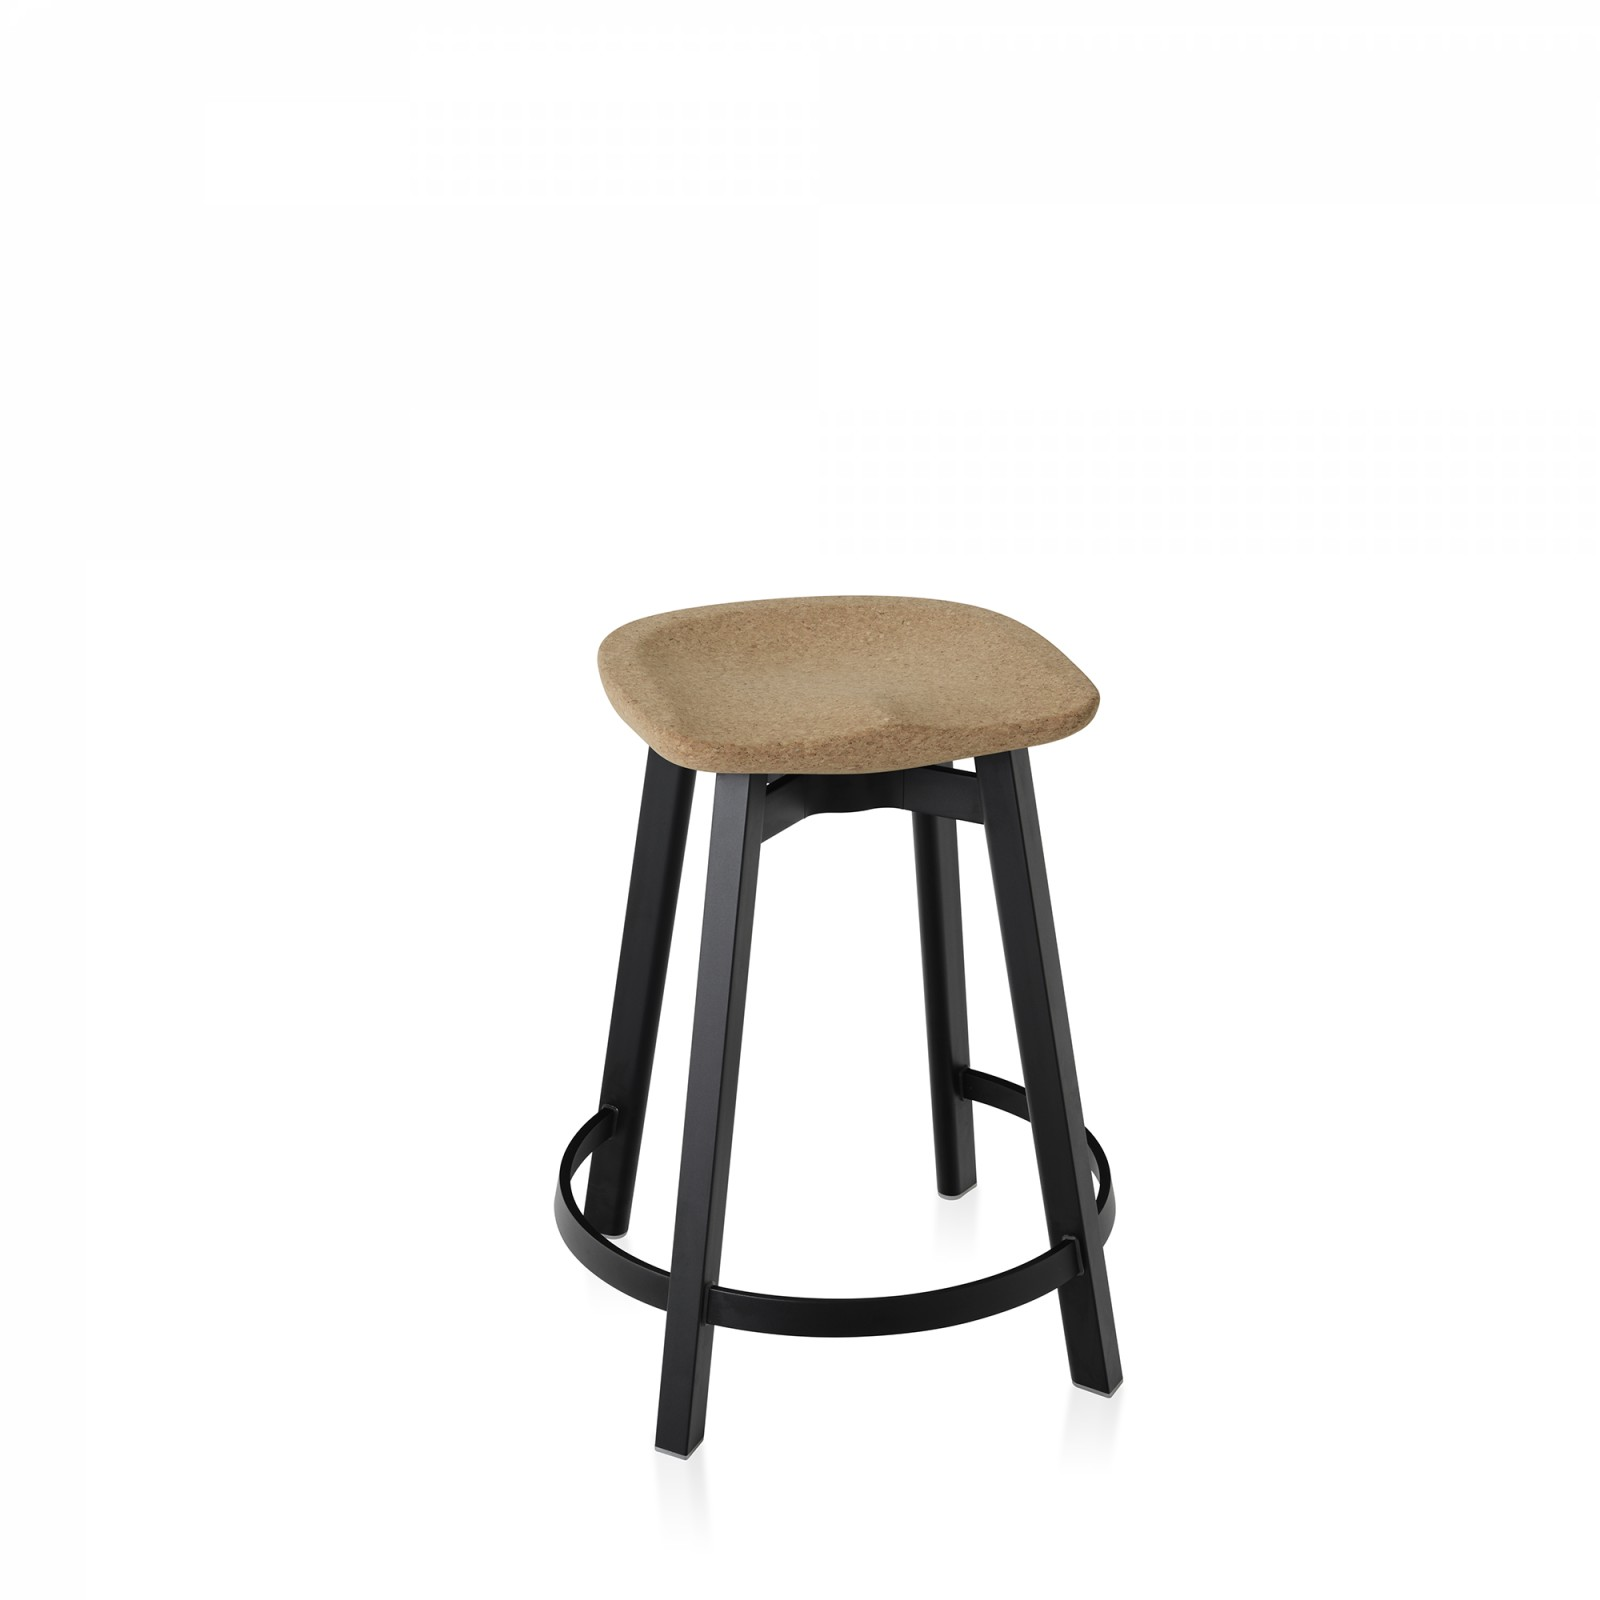 Su Counter Stool Black Aluminium, Cork